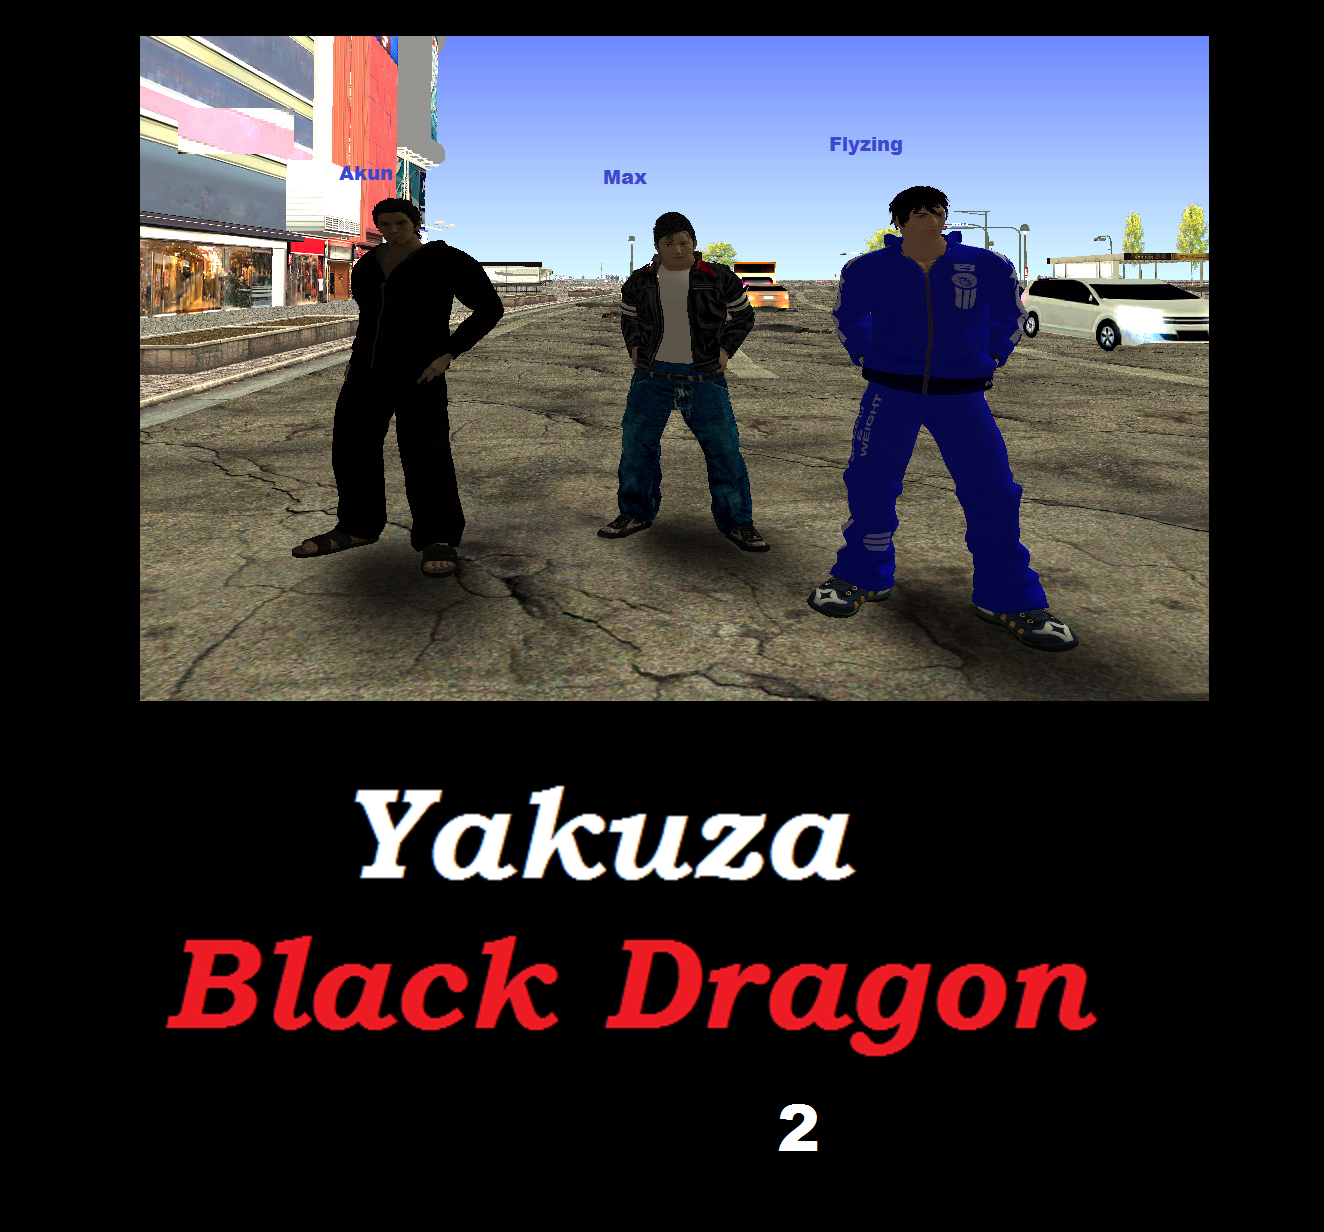 Yakuza Black Dragon 2